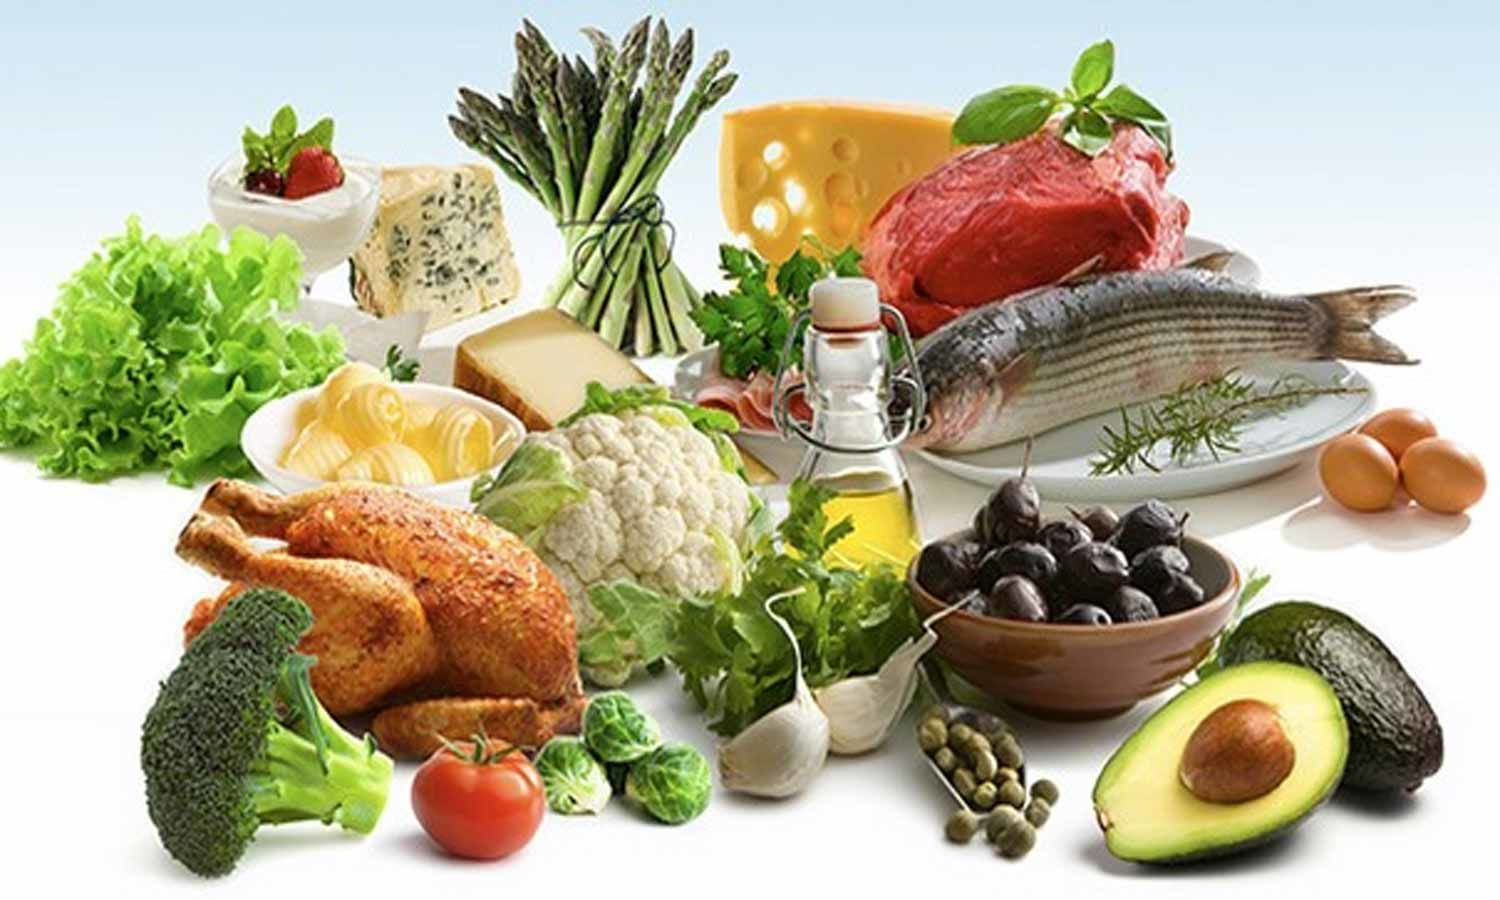 Low carb high-fat diet may reduce blood sugar significantly in diabetes - Medical Dialogues